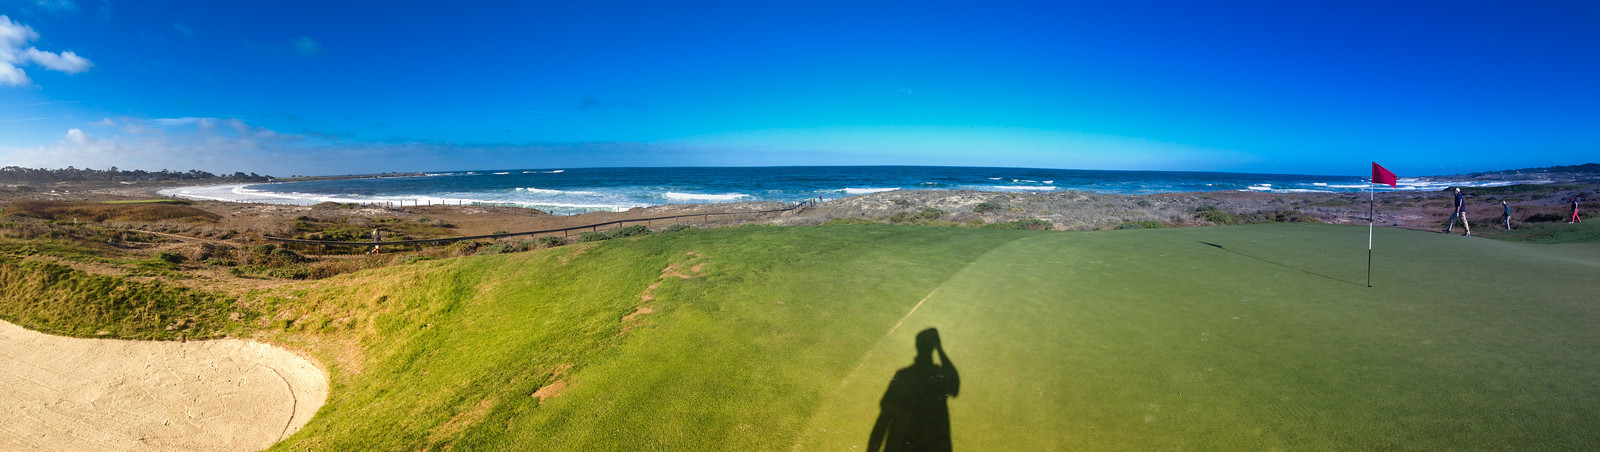 Spanish Bay Golf